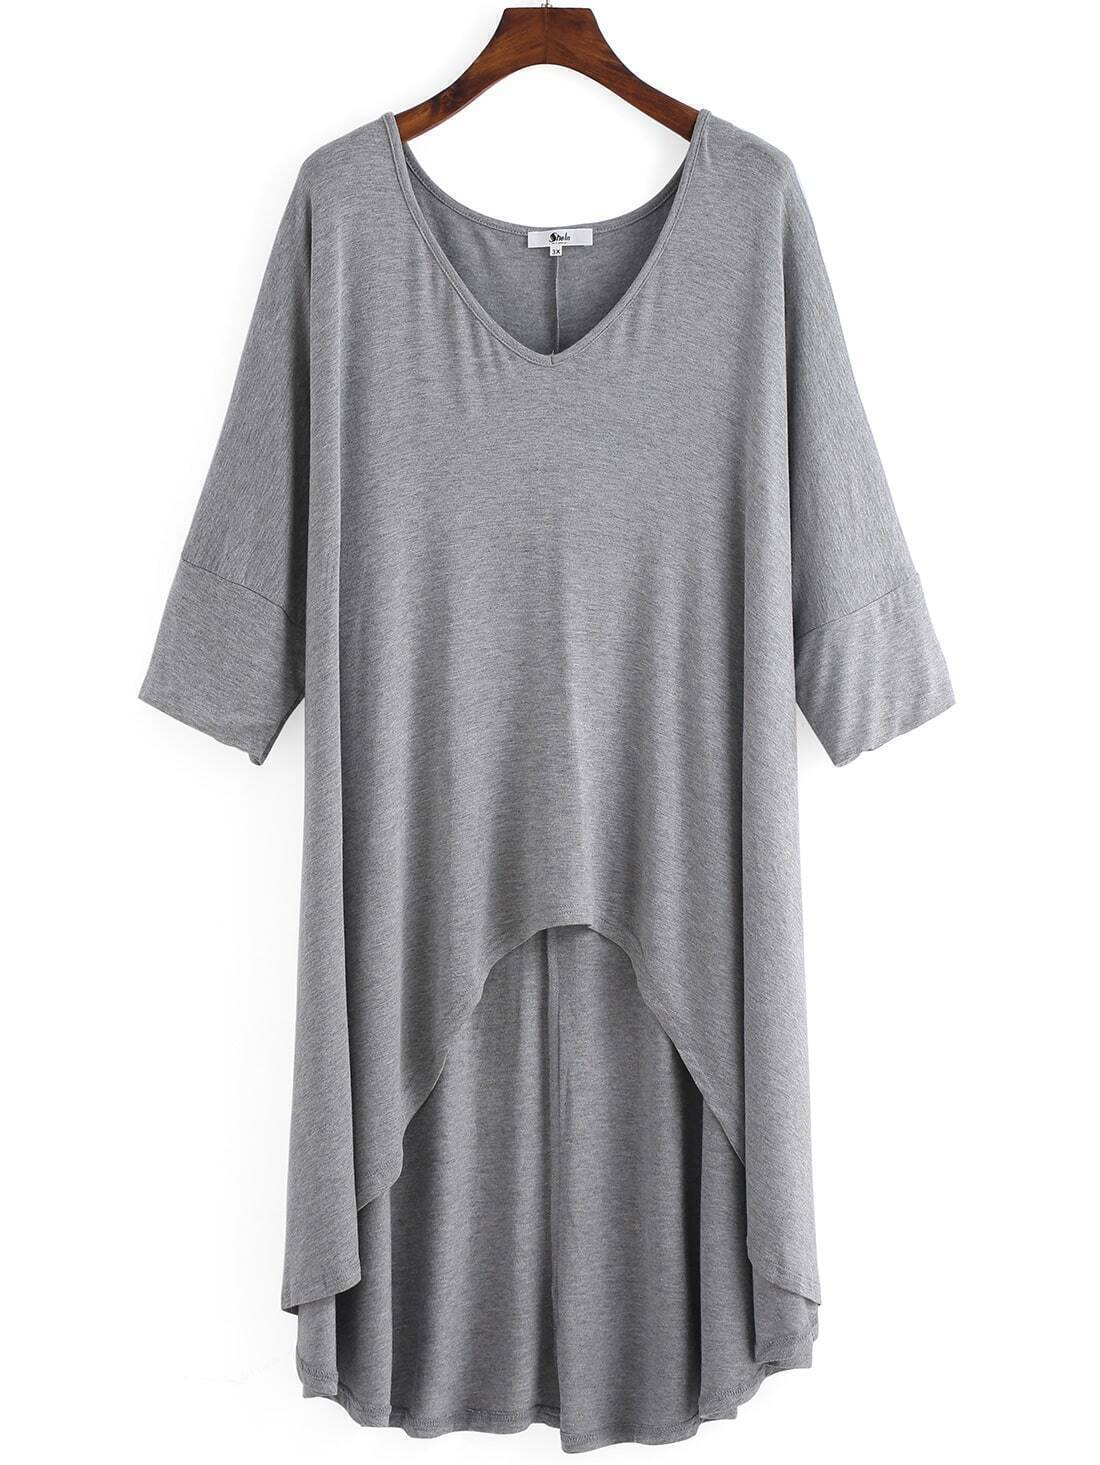 Grey V Neck Dip Hem Plus Size T-shirt